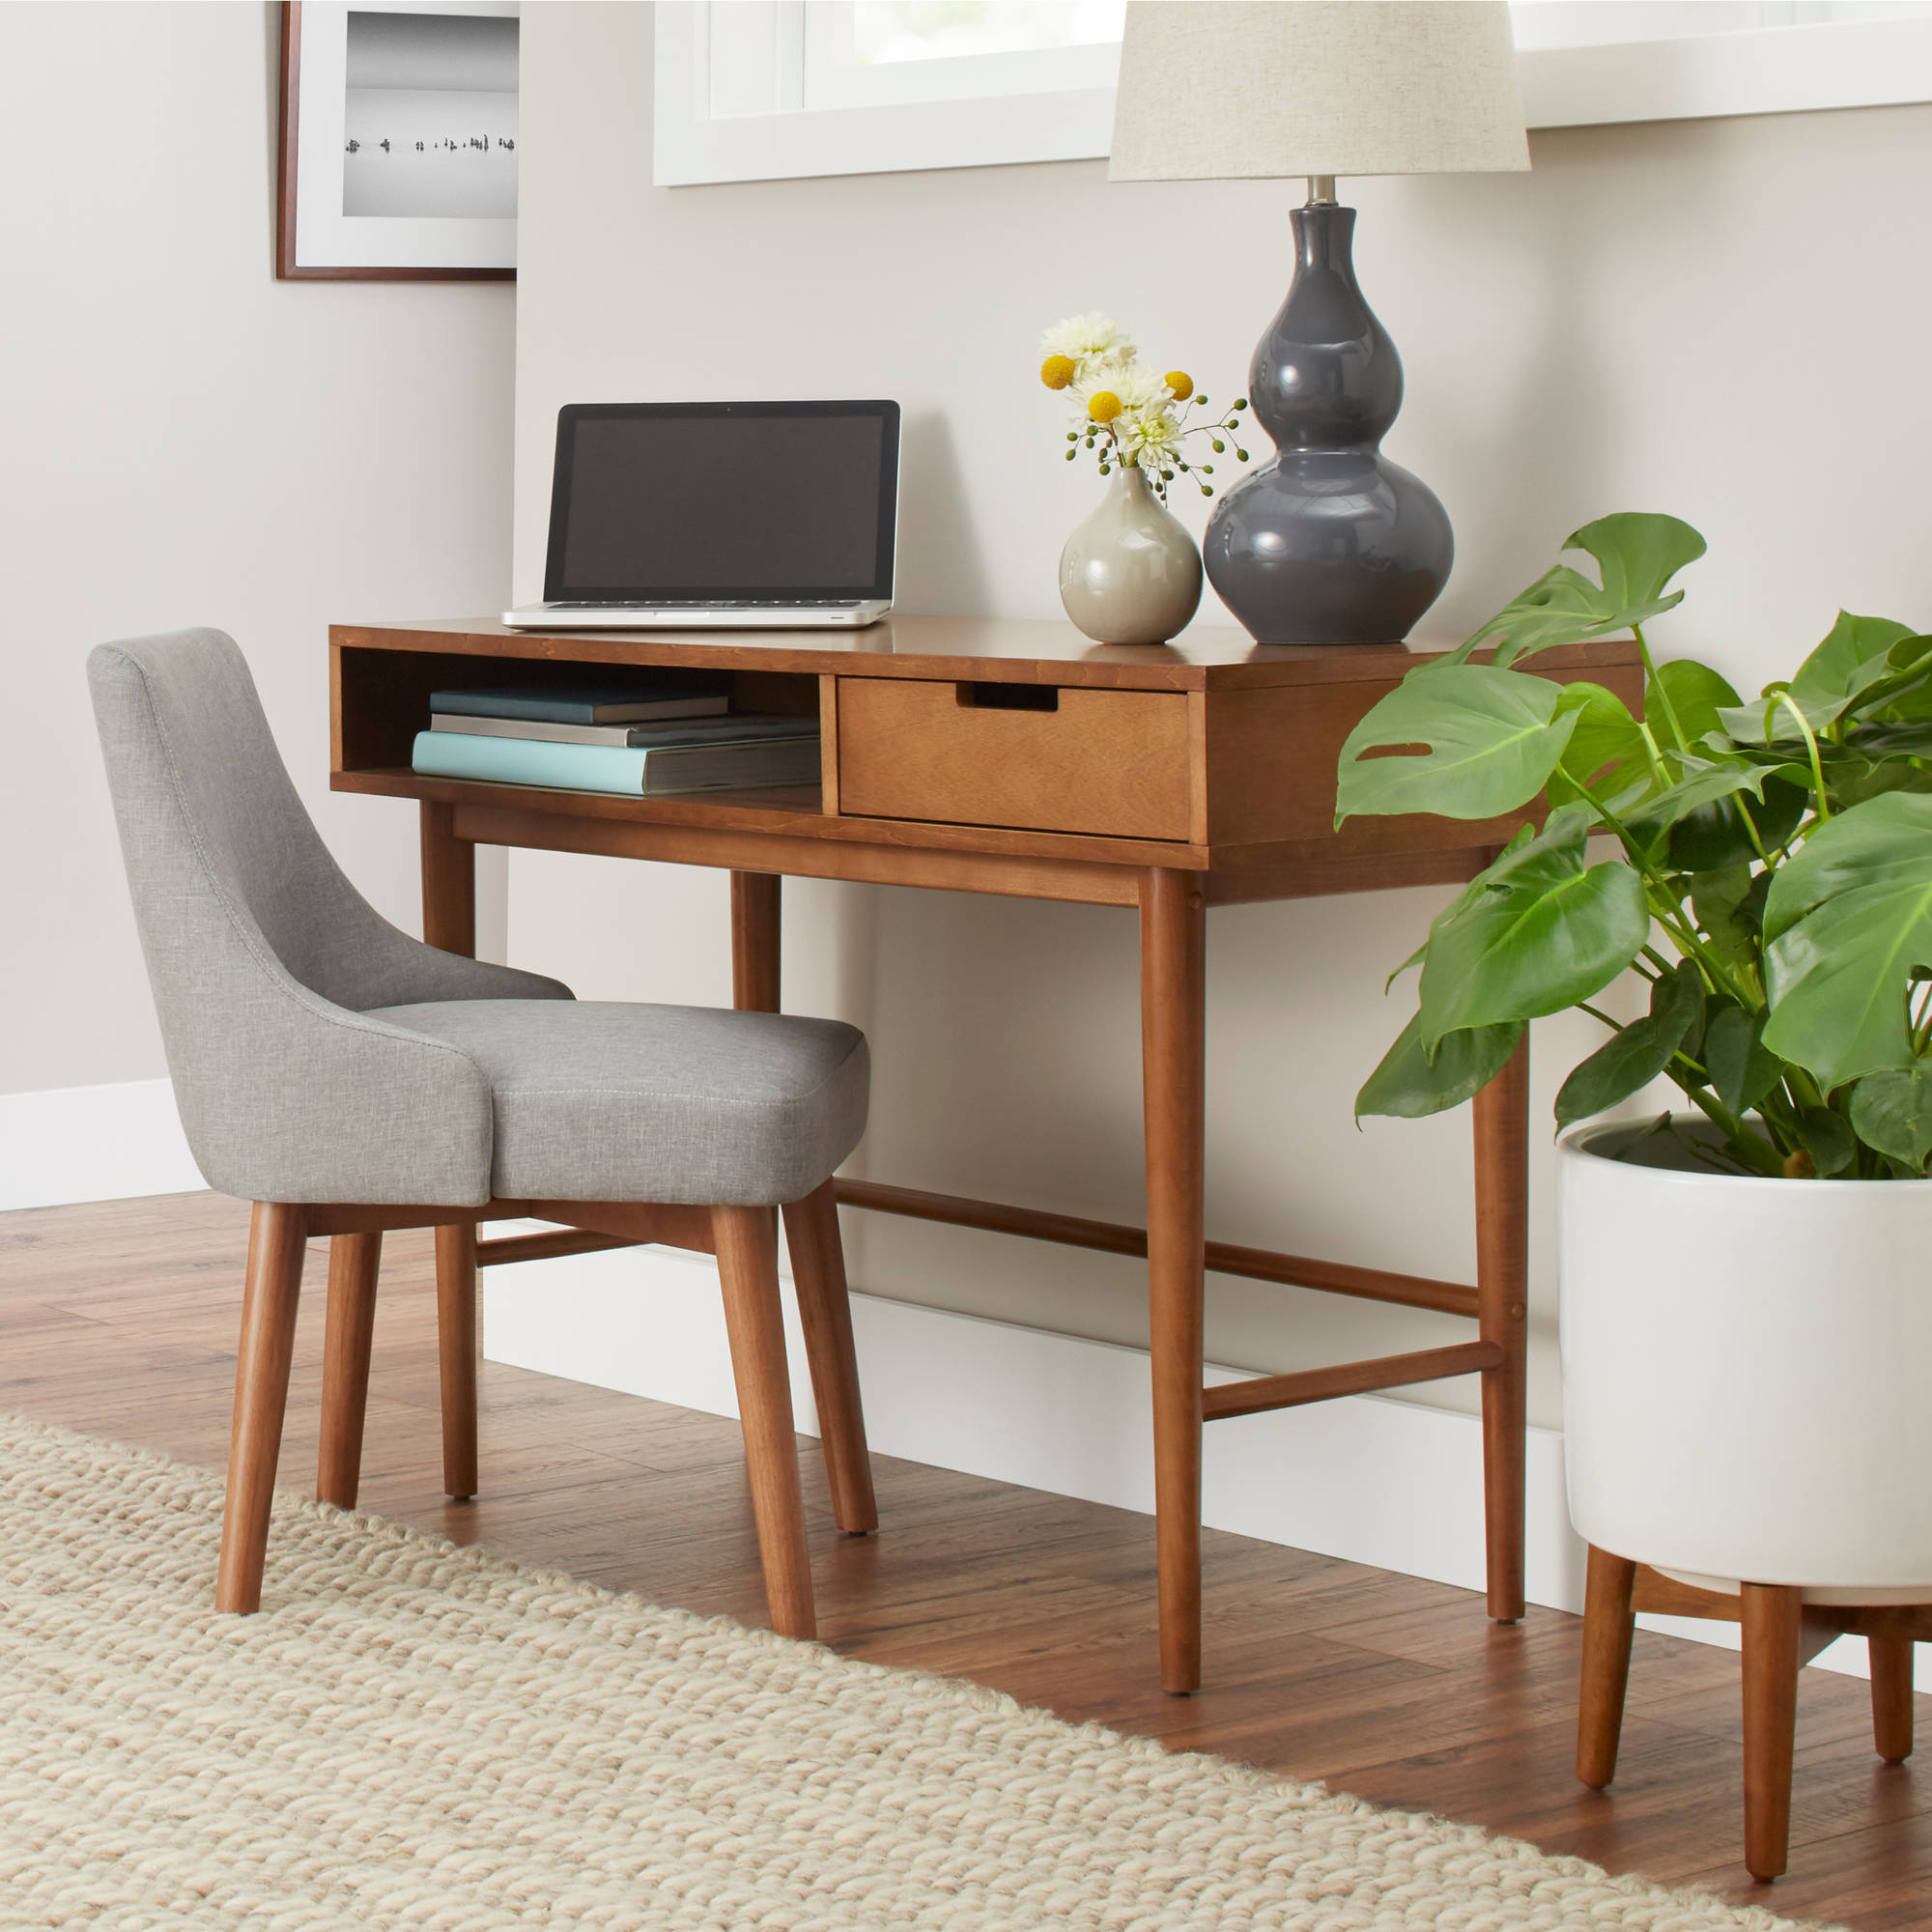 Better Homes & Gardens Flynn Mid Century Modern Desk, Pecan